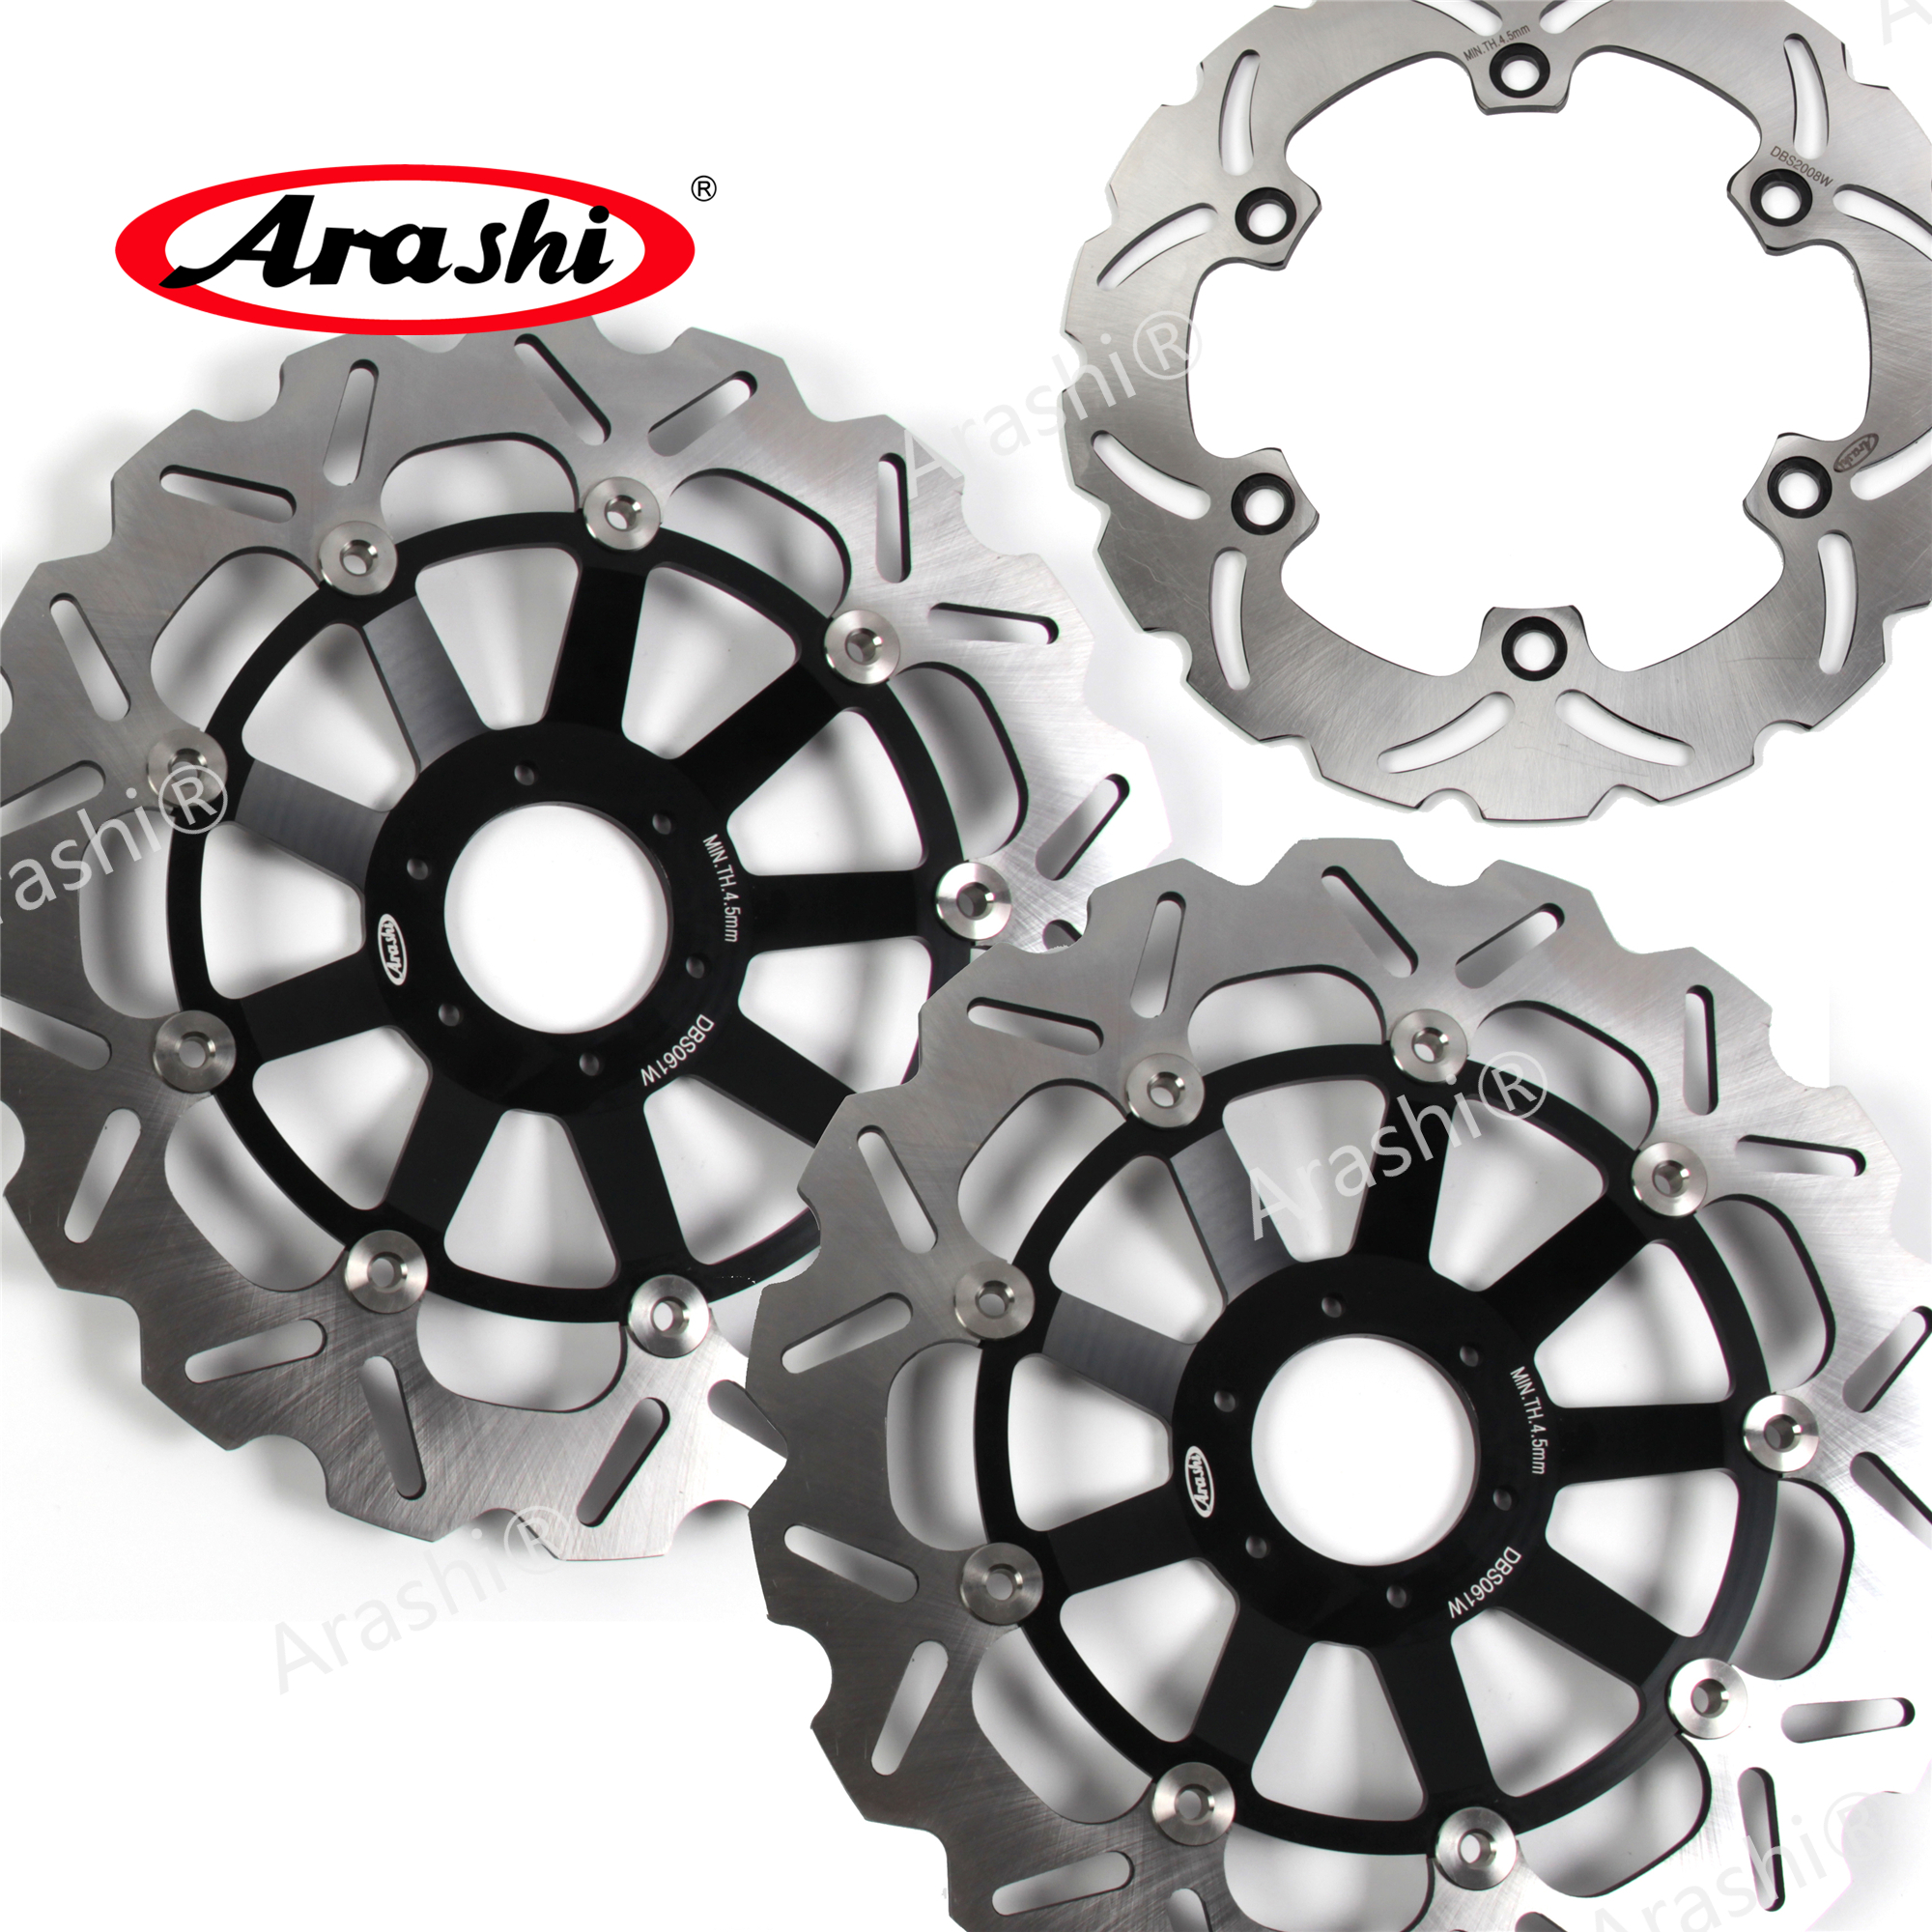 Clutch Plates Kit Honda CBR1100 XX Blackbird 1100 99-04